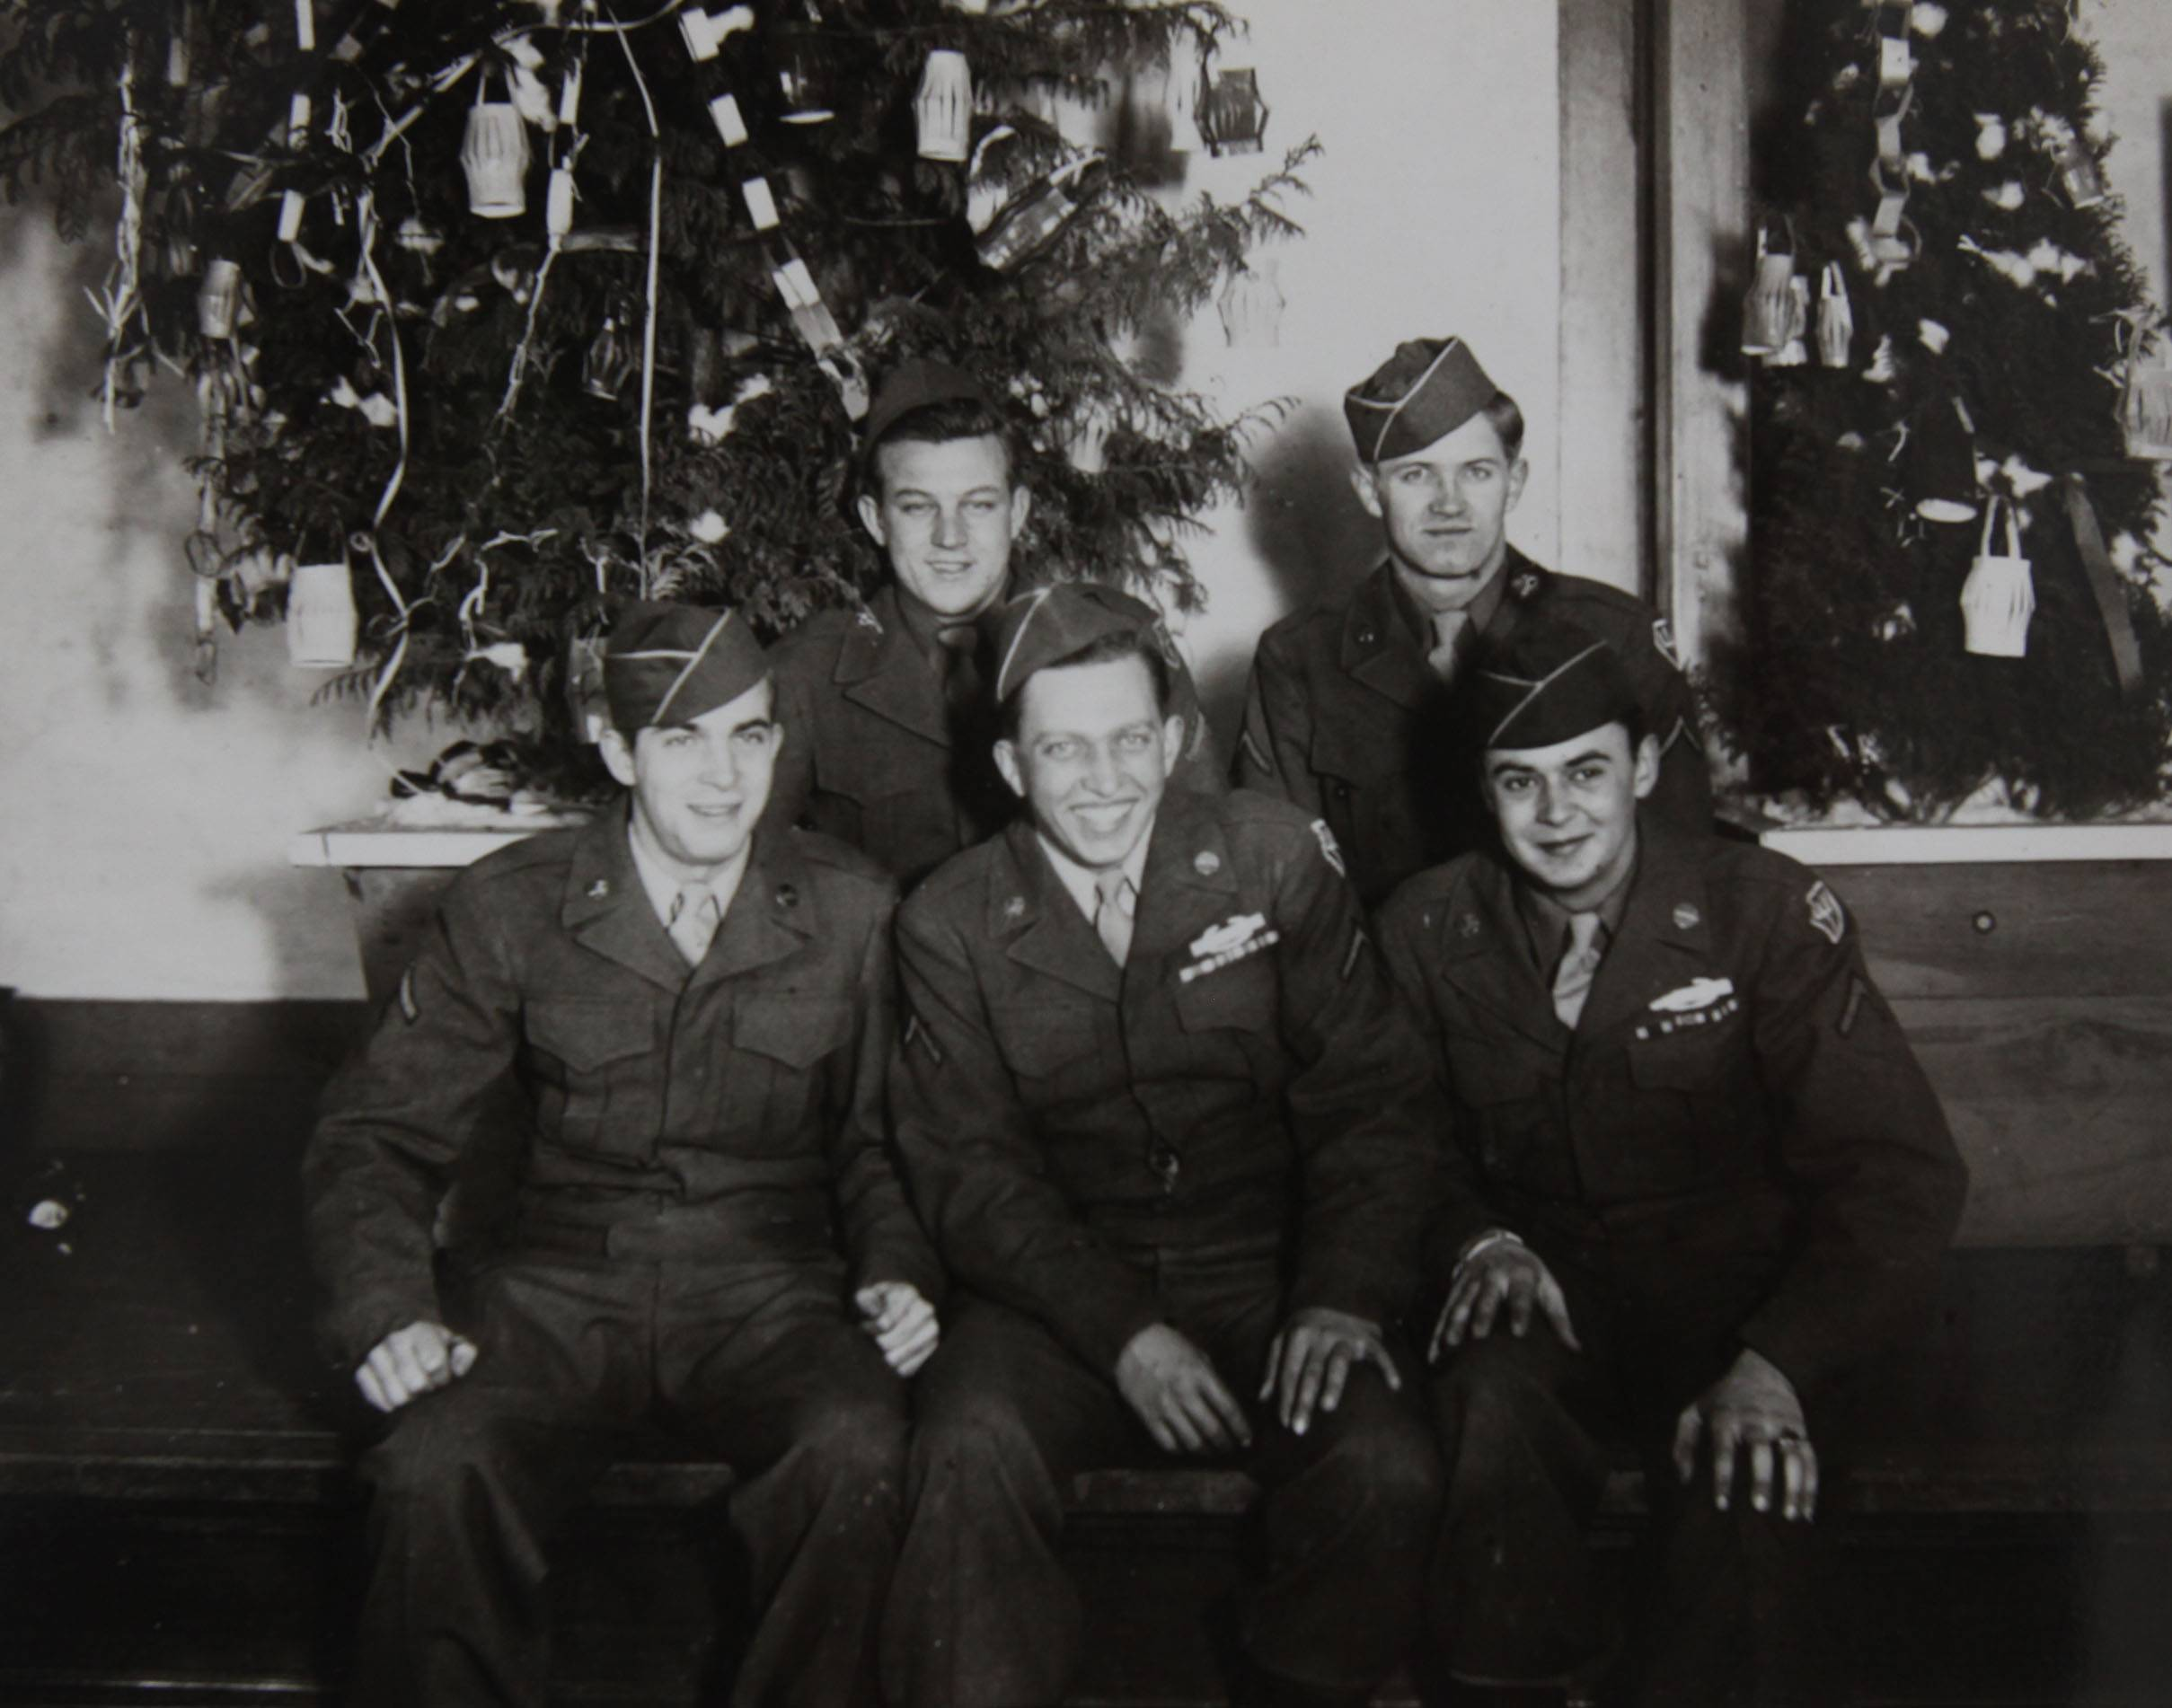 Joe Knupp, front row center, during Christmastime in 1945 in Koriyama, Japan.